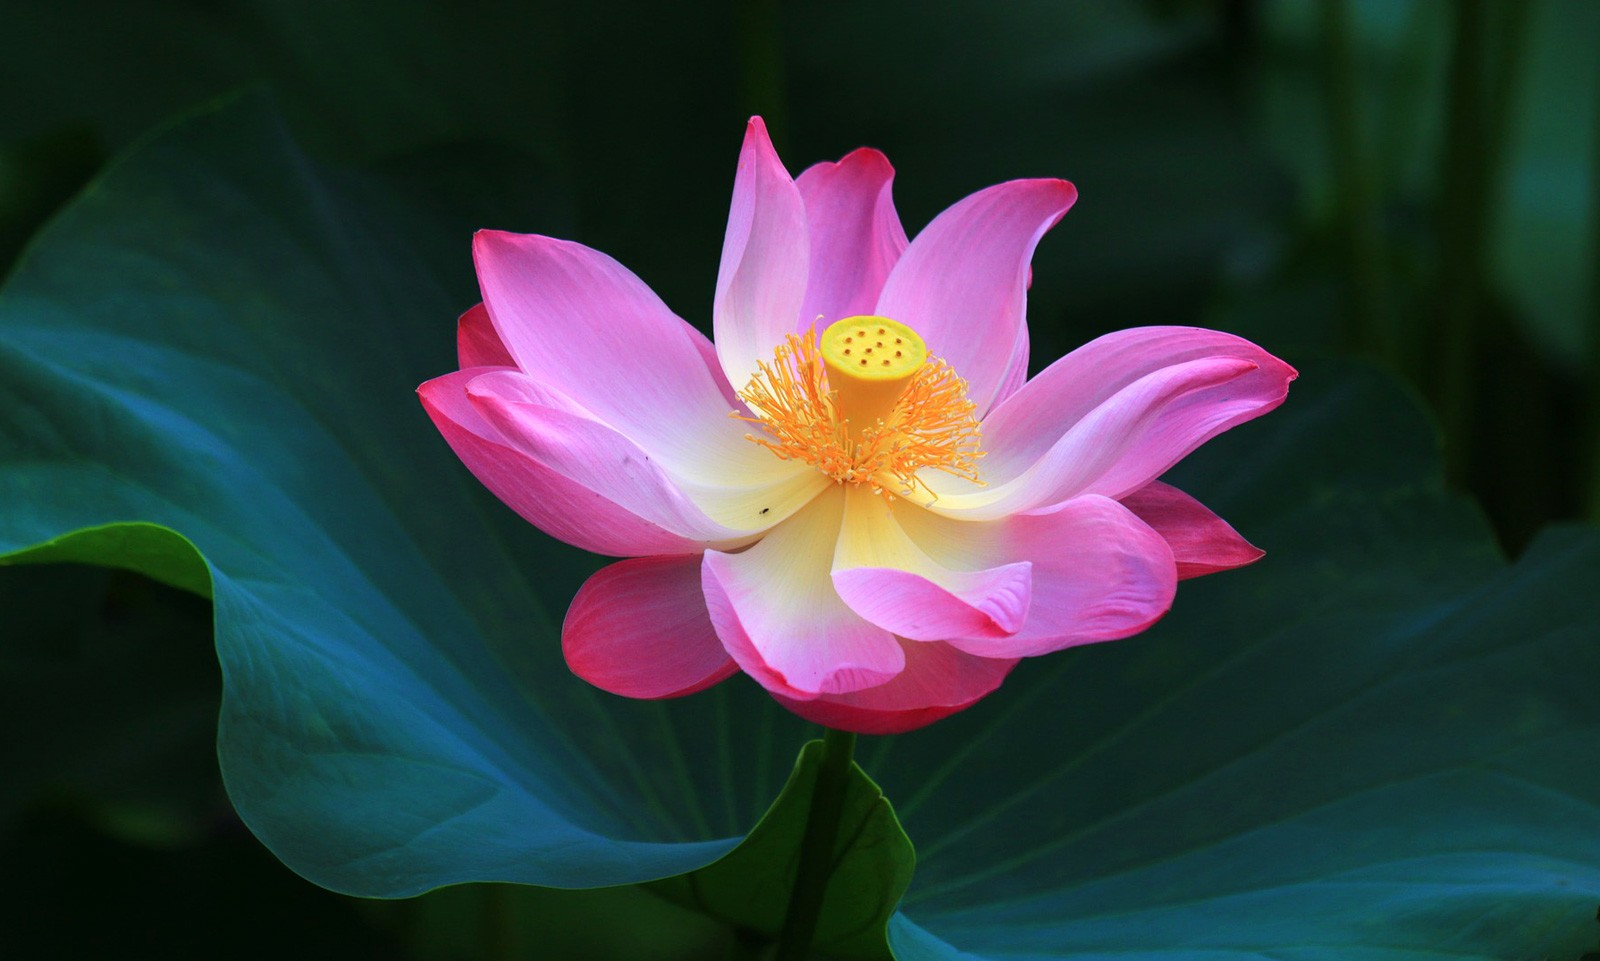 Lotus flower meanings and lotus symbolism on whats your sign izmirmasajfo